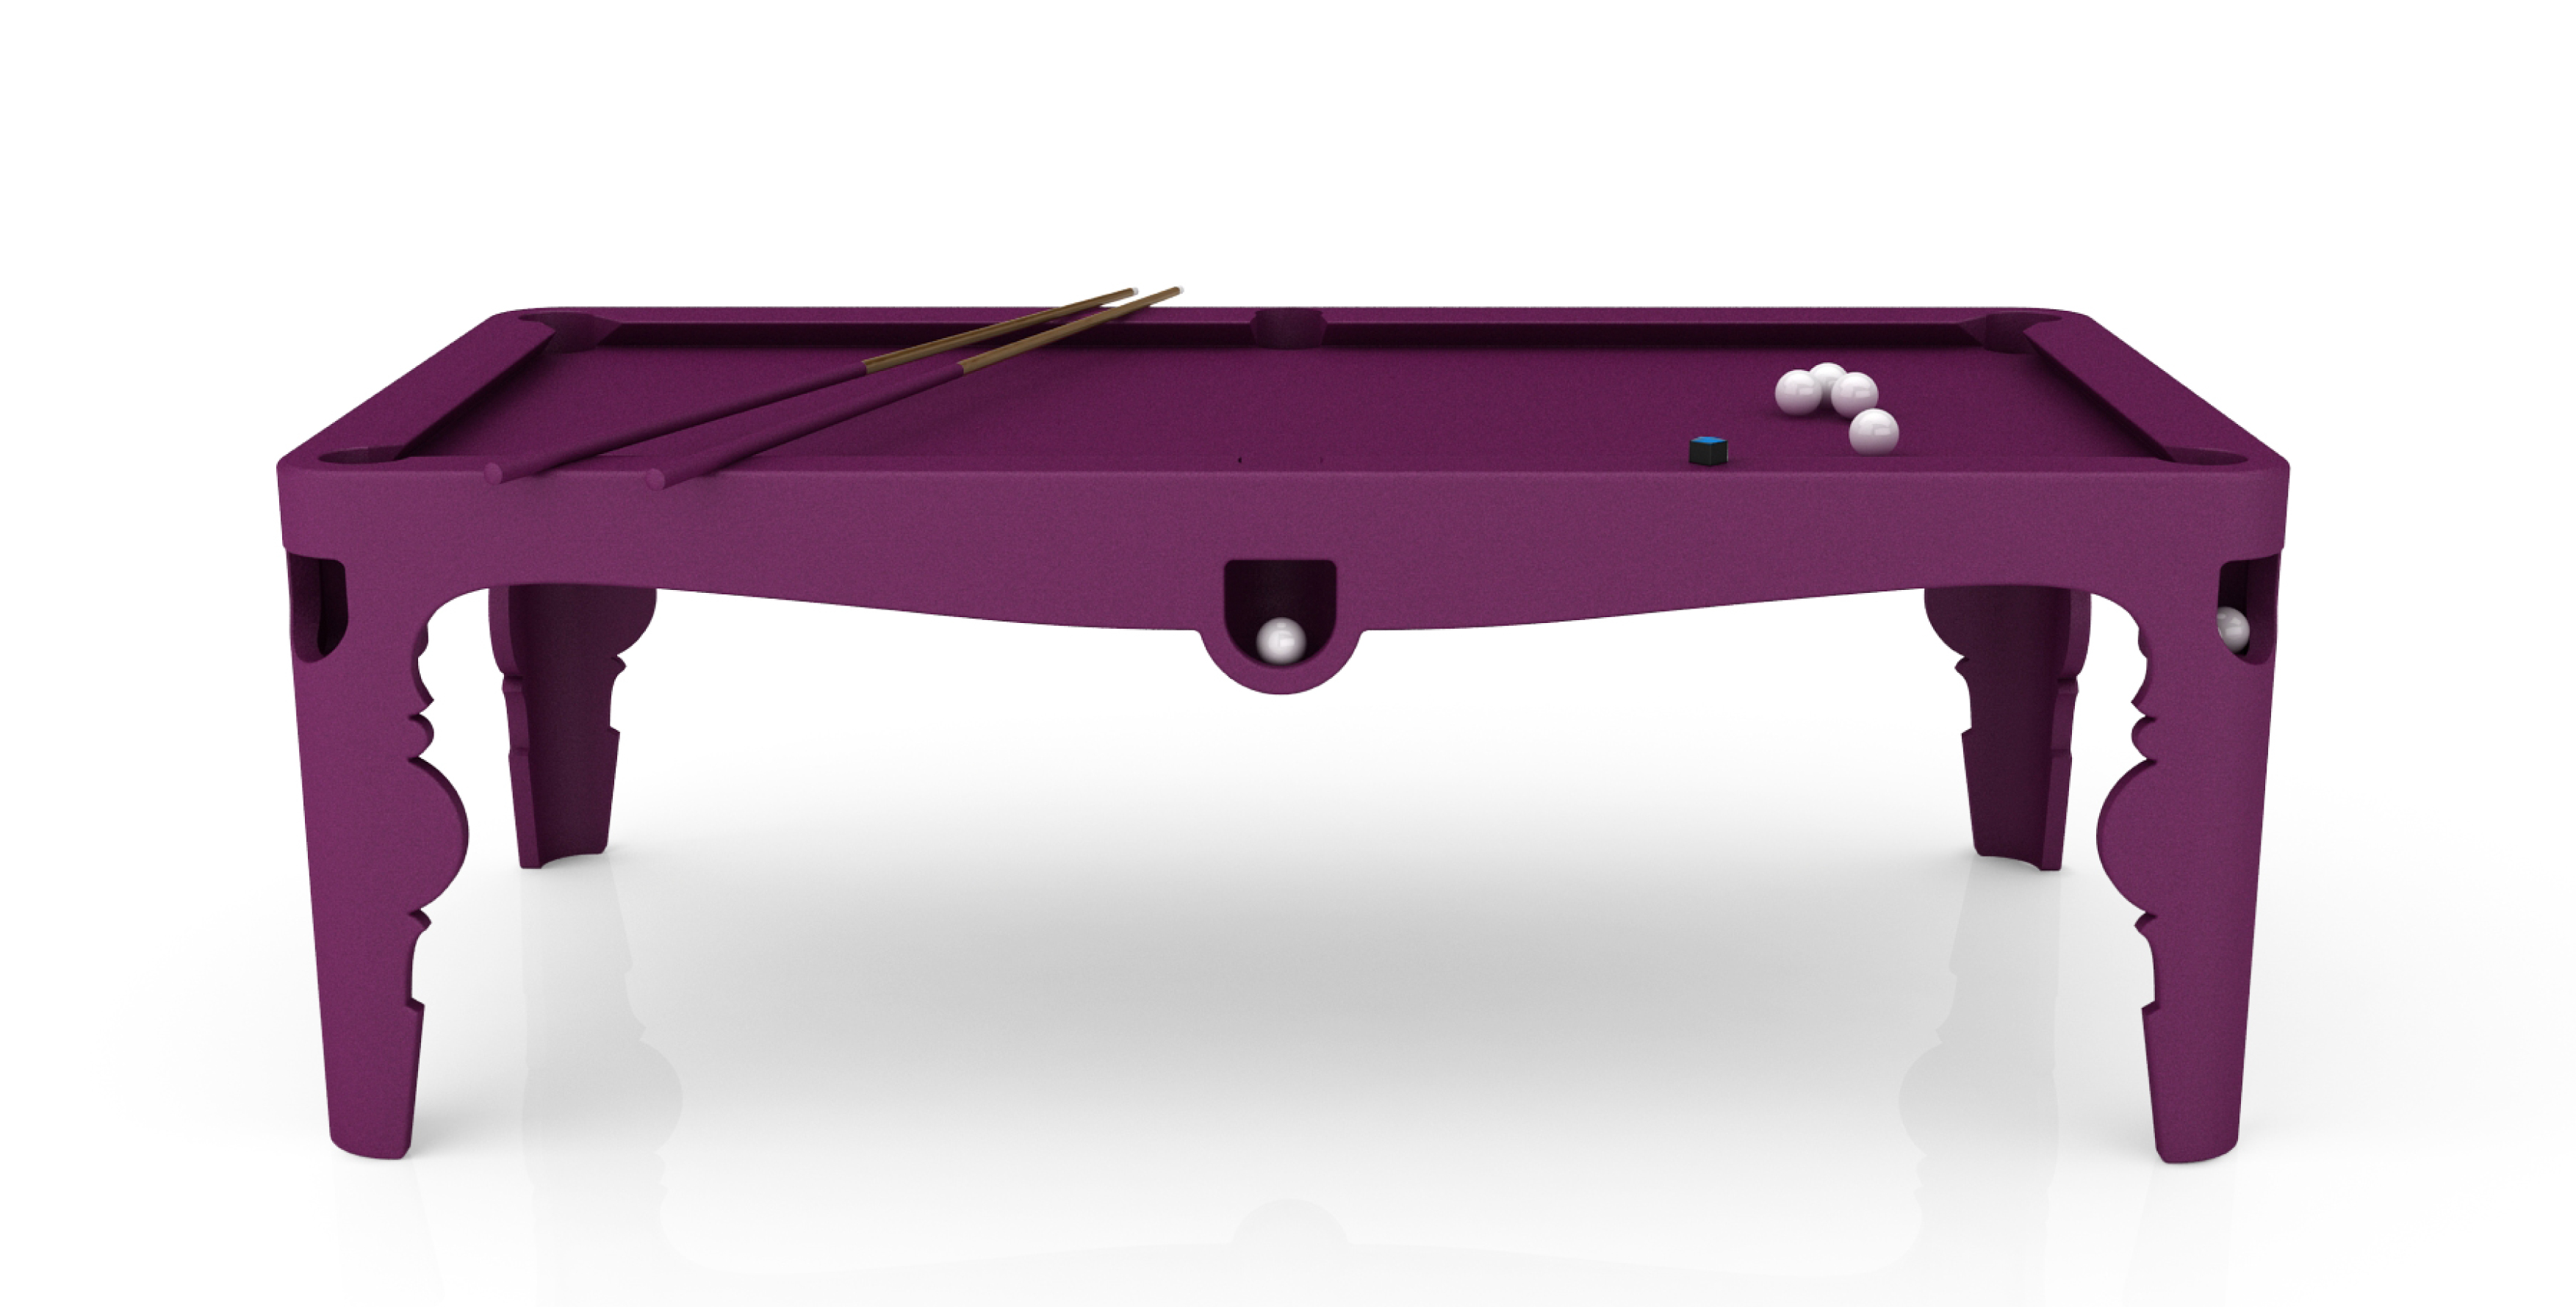 Marcel Wanders - Alcantara Pool Table